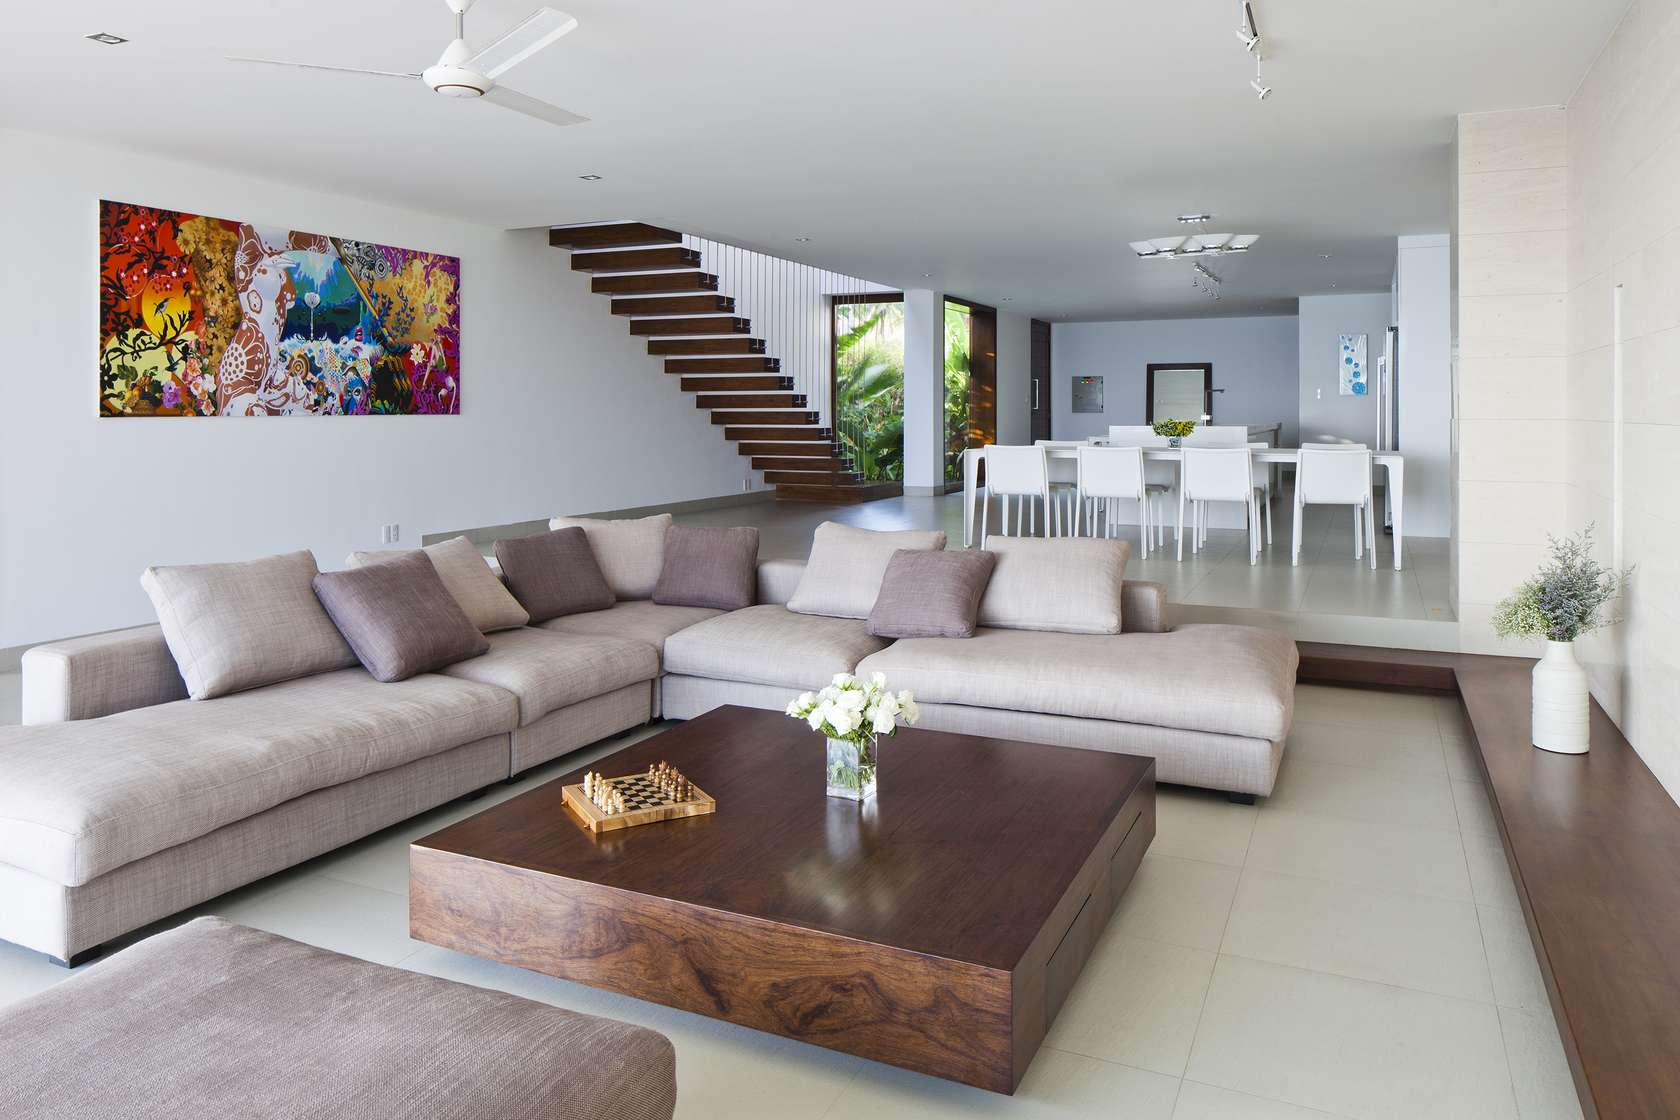 Oceanique-Villas-Vietnam-living-room-furniture